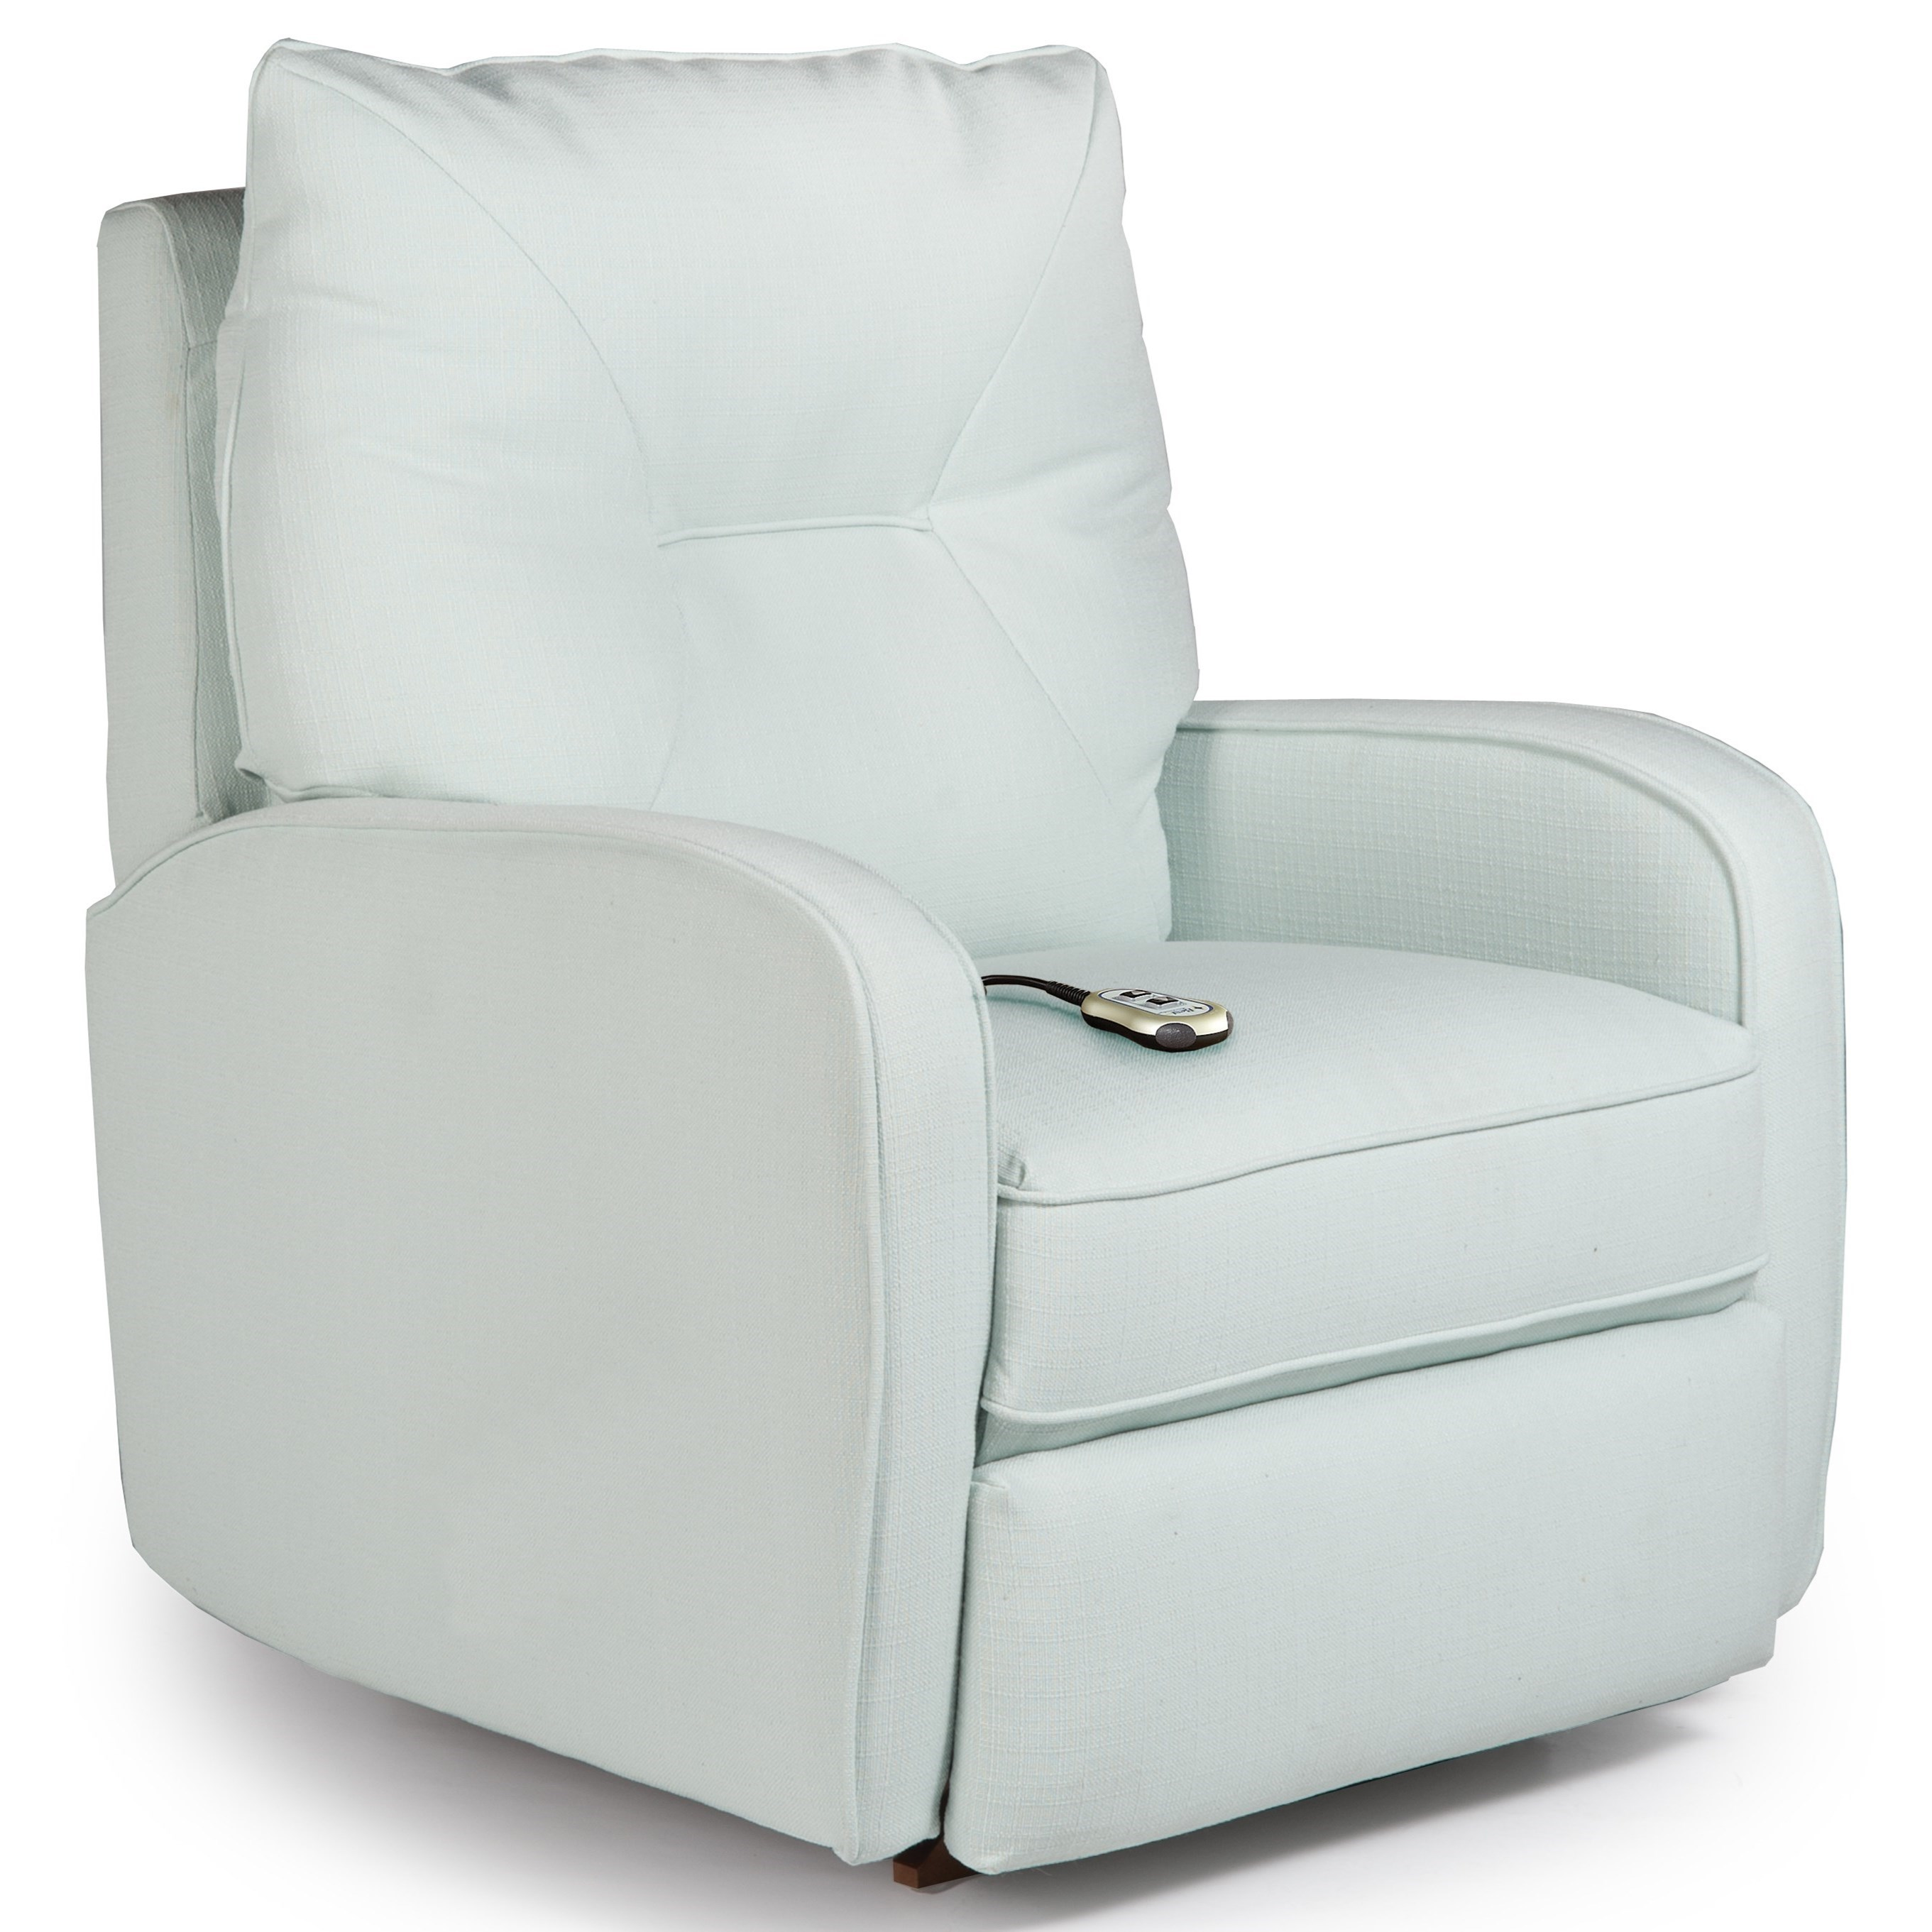 Best Home Furnishings Recliners - Medium Ingall Power Lift Recliner  - Item Number: 2A01